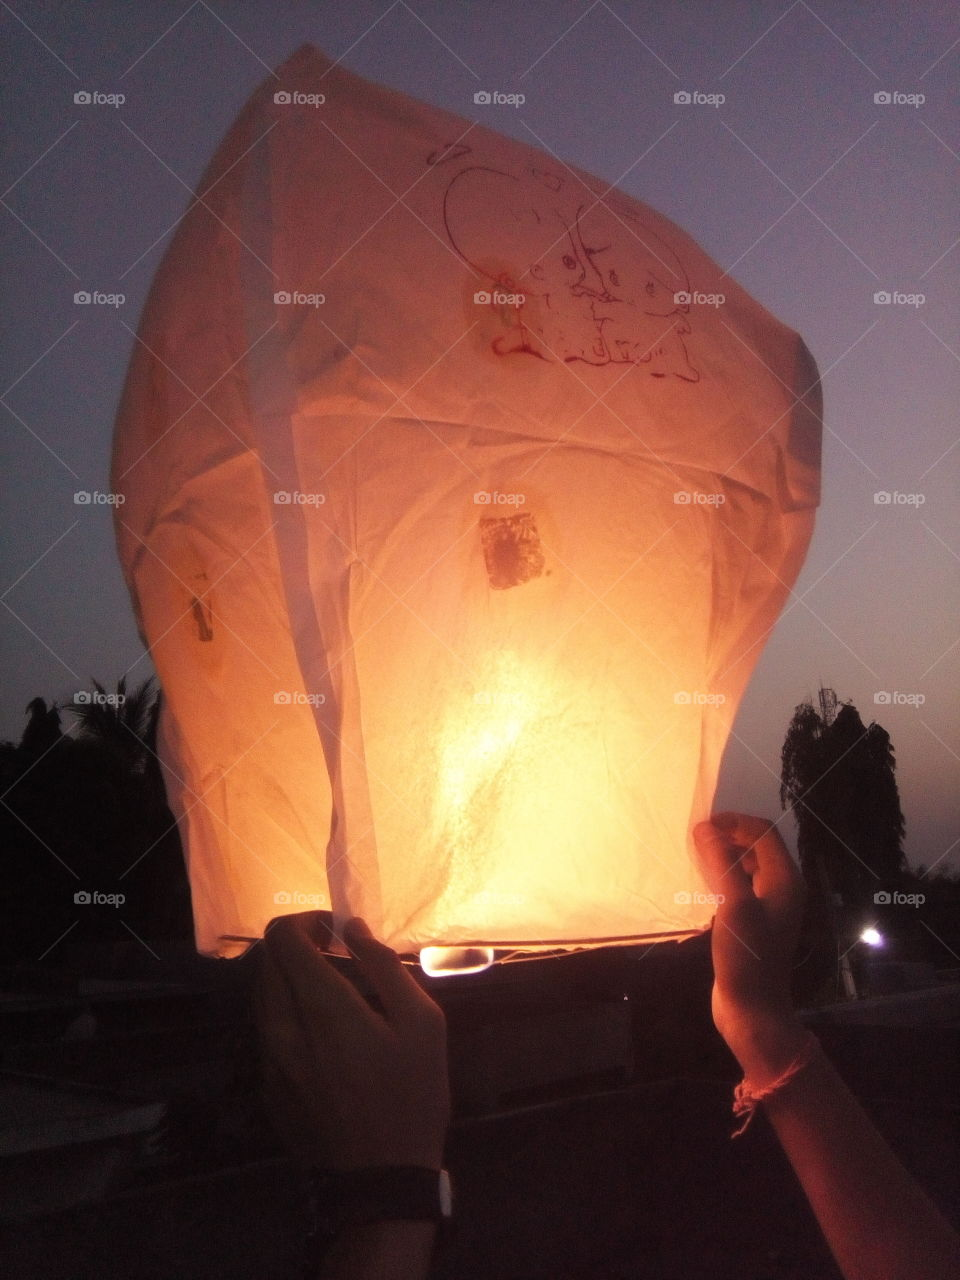 Ahot air balloonis alighter than airaircraft consisting of a bag, called an envelope, which contains heated air. Suspended beneath is agondolaorwicker basket(in some long-distance or high-altitude balloons, acapsule), which carries passengers and (usually) a source of heat, in most cases an open flame. The heated air inside the envelope makes itbuoyantsince it has alower densitythan the colder air outside the envelope. As with allaircraft, hot air balloons cannot fly beyond theatmosphere. Unlikegas balloons, the envelope does not have to be sealed at the bottom, since the air near the bottom of the envelope is at the same pressure as the surrounding air. In modern sport balloons the envelope is generally made fromnylonfabric and the inlet of the balloon (closest to the burner flame) is made from a fire resistant material such asNomex. Modern balloons have been made in all kinds of shapes, such as rocket ships and the shapes of various commercial products, though the traditional shape is used for most non-commercial, and many commercial, applications.  The hot air balloon is the first successful human-carryingflighttechnology. The first untethered manned hot air balloon flight was performed byJean-François Pilâtre de RozierandFrançois Laurent d'Arlandeson November 21, 1783, inParis,France,[1]in a balloon created by theMontgolfier brothers.[2]The first hot-air balloon flown in the Americas was launched from theWalnut Street Jailin Philadelphia on January 9, 1793 by the French aeronautJean Pierre Blanchard.[3]Hot air balloons that can be propelled through the air rather than simply drifting with thewindare known asthermal airships. Ahot air balloonis alighter than airaircraft consisting of a bag, called an envelope, which contains heated air. Suspended beneath is agondolaorwicker basket(in some long-distance or high-altitude balloons, acapsule), which carries passengers and (usually) a source of heat, in most cases an open